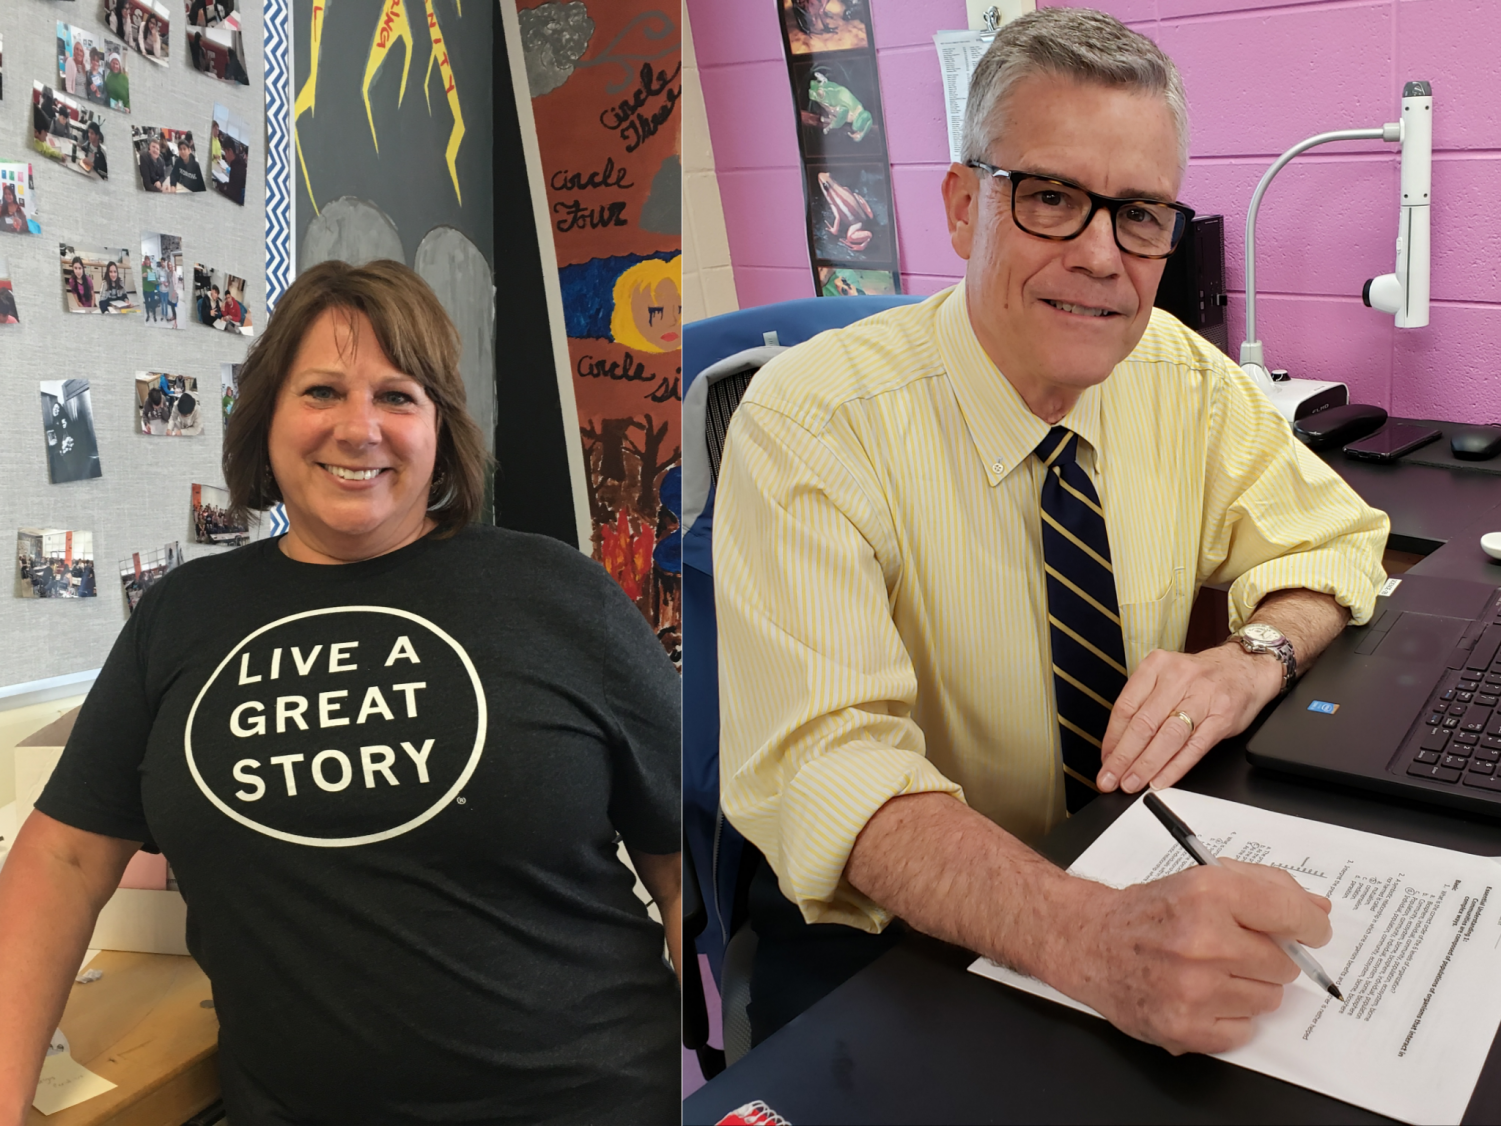 Science teacher Hank Murphy will retire after teaching for 15 years. Special education teacher Catherine Thielberg hopes to work for the Obama Foundation after she retires from her career here.